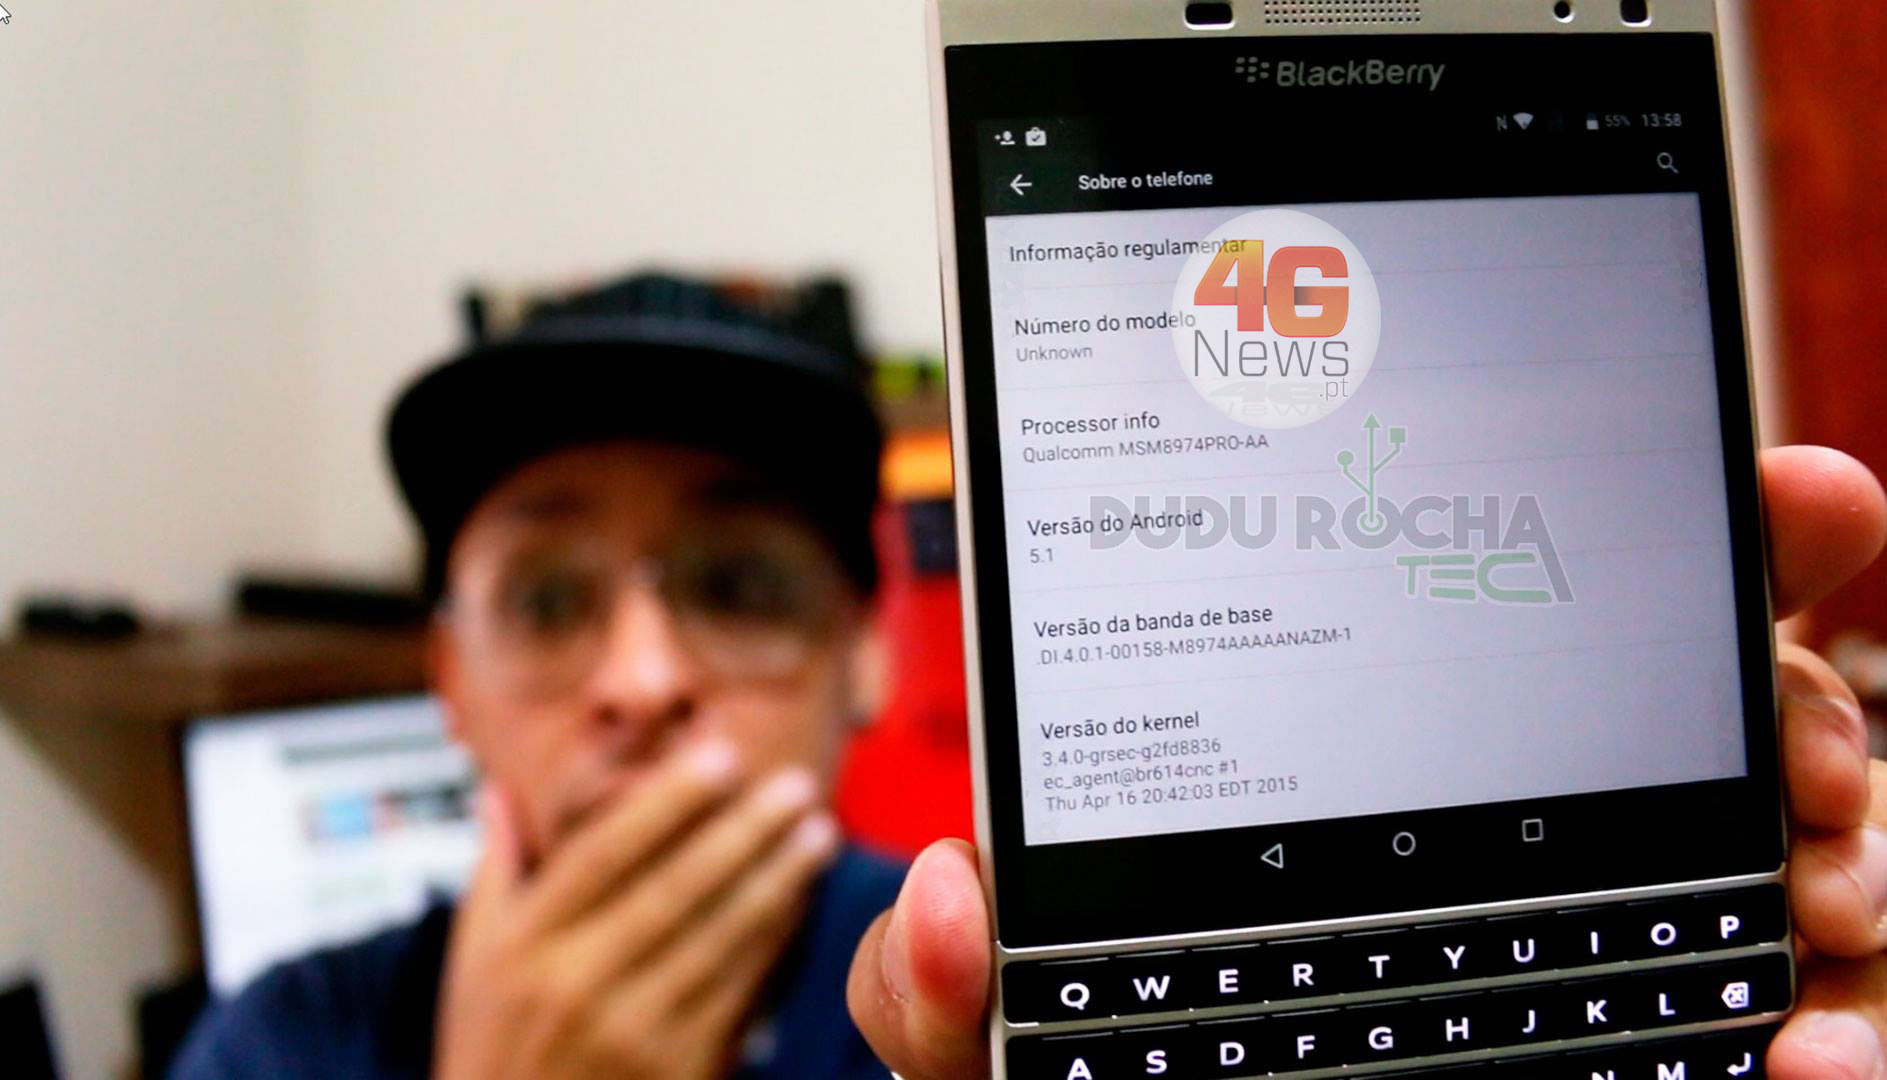 BlackBerry-Passport-Lollipop-5.1.jpg